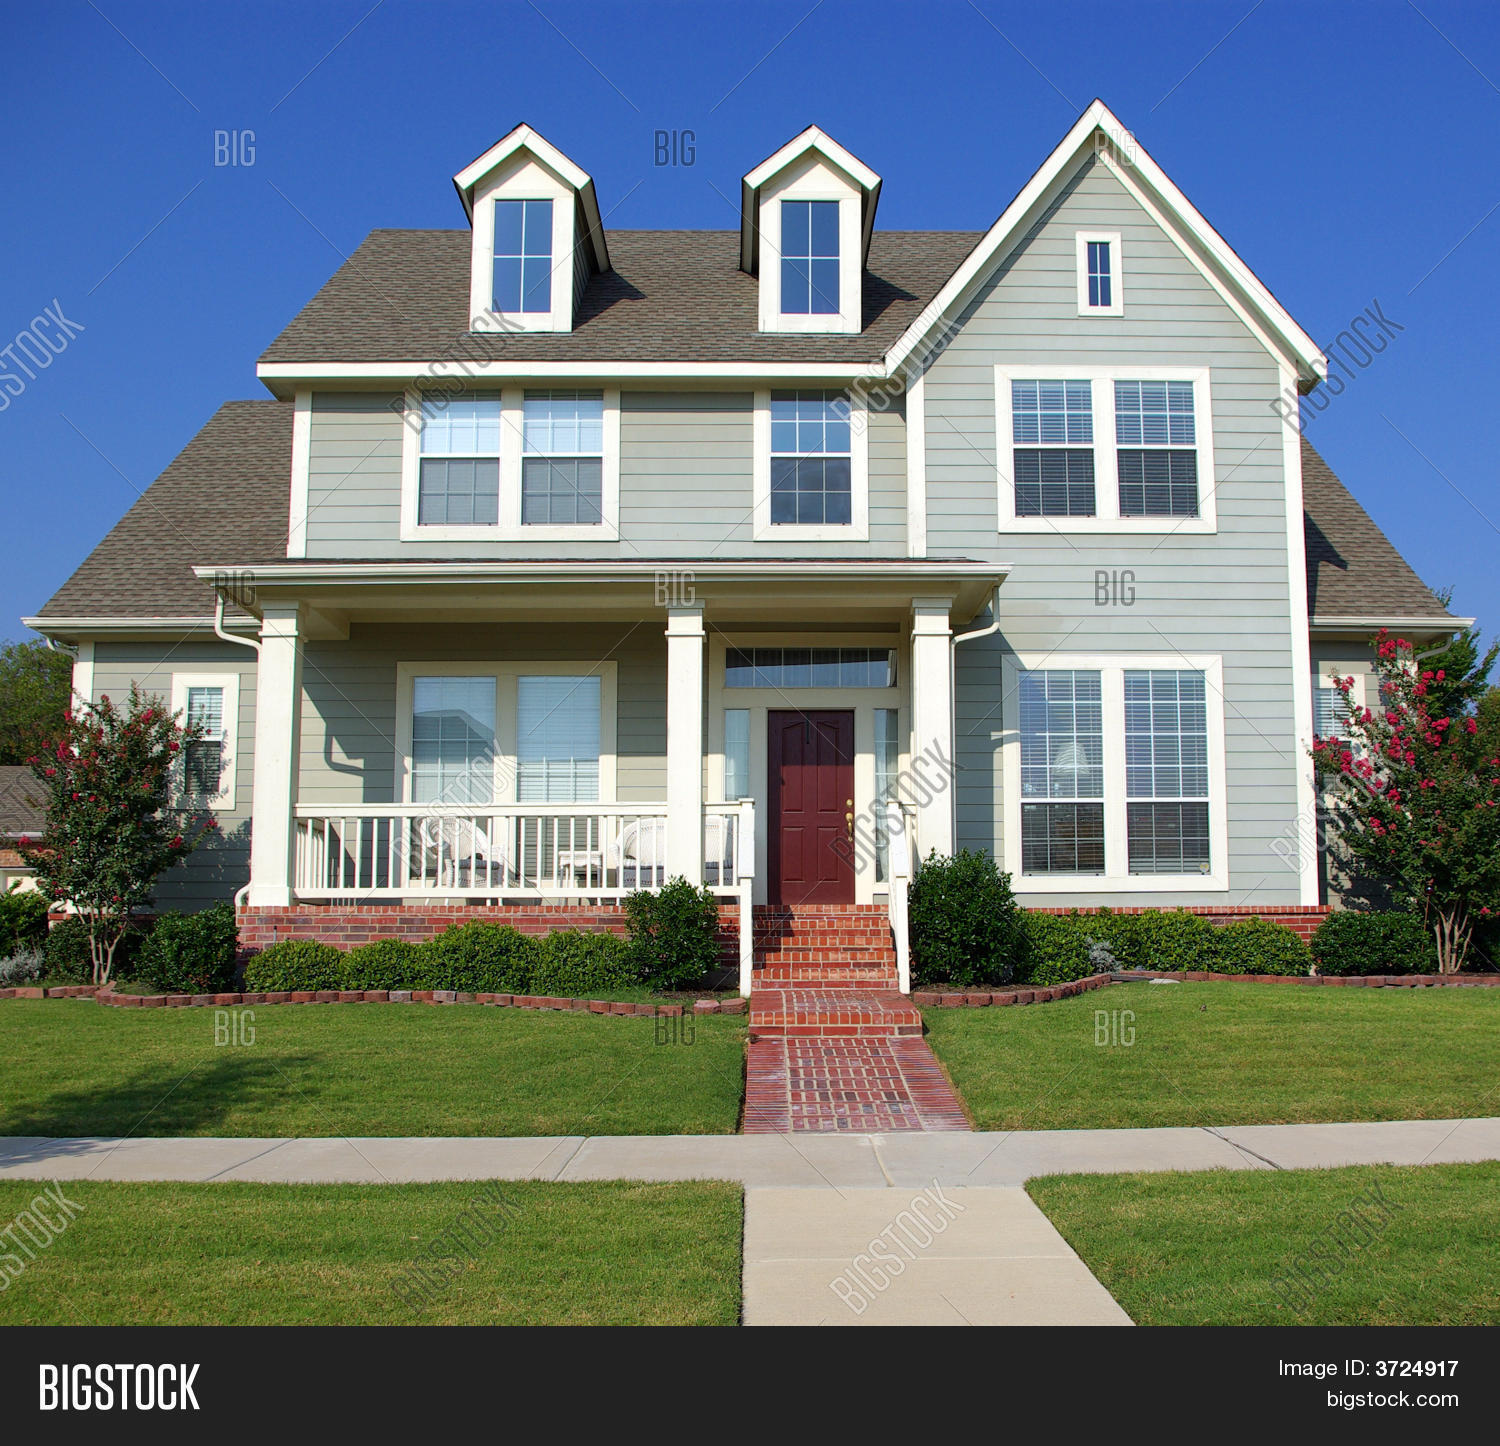 Victorian style american home stock photo stock images for Big houses in america